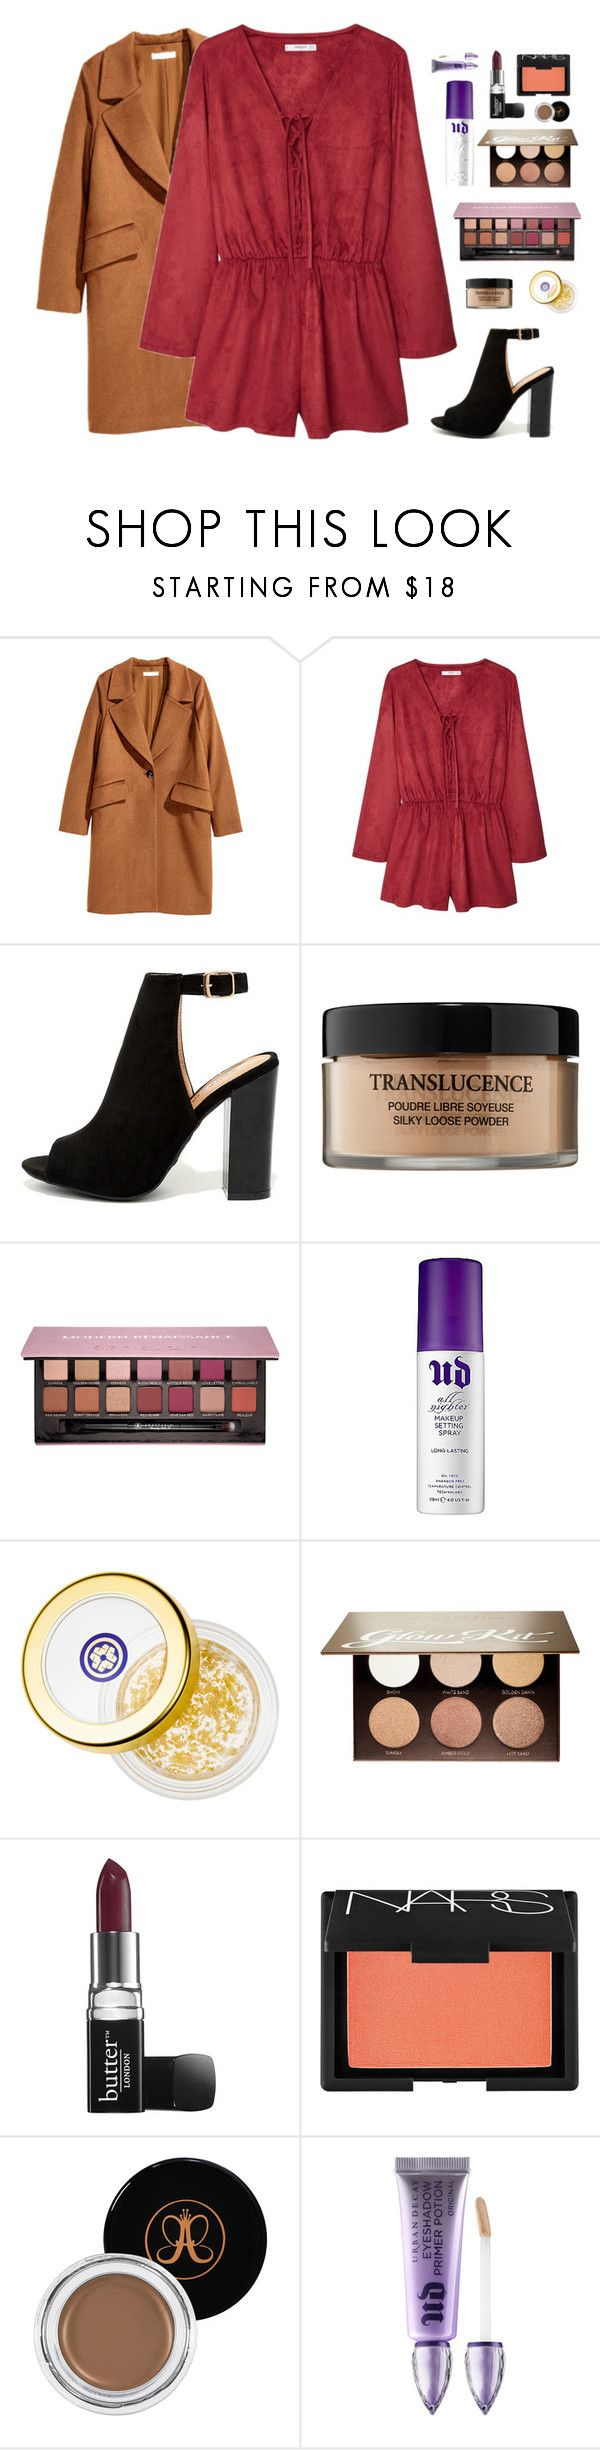 """Ever Since New York"" by btravis5252 ❤ liked on Polyvore featuring H&M, MANGO, Bamboo, Lancôme, Anastasia Beverly Hills, ULTA, Tatcha, Butter London, NARS Cosmetics and Urban Decay"